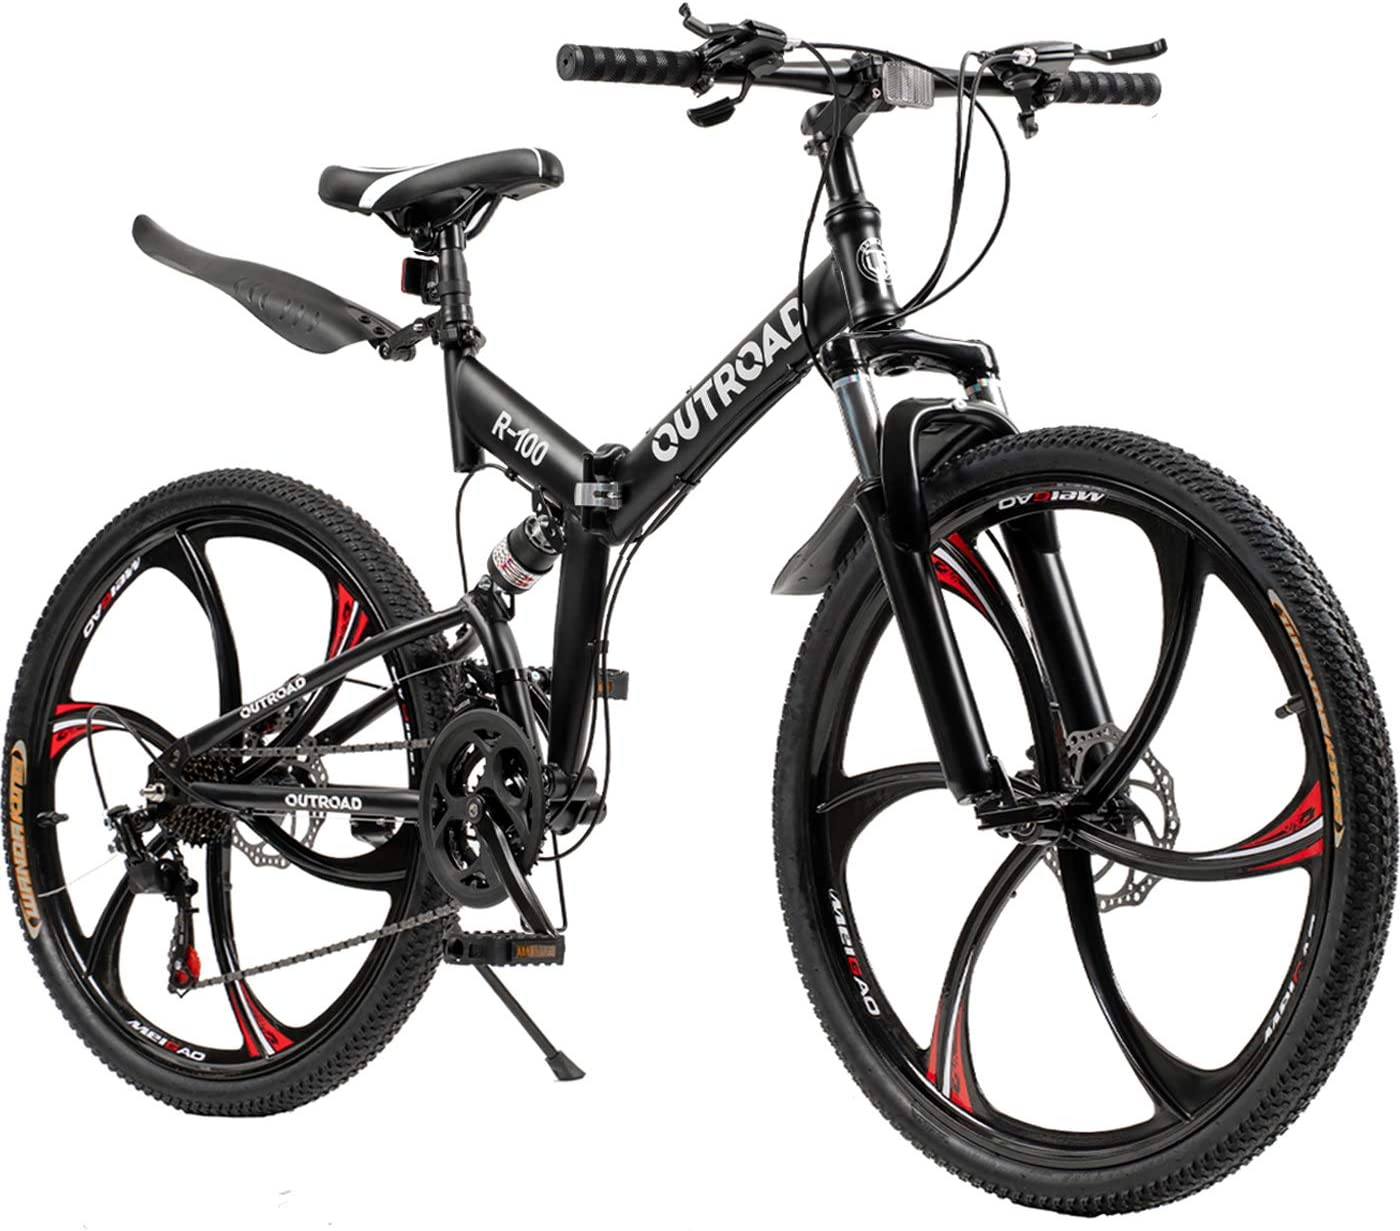 best mountain bike under 500: Outroad 21 Speed 26 in Folding Mountain Bike